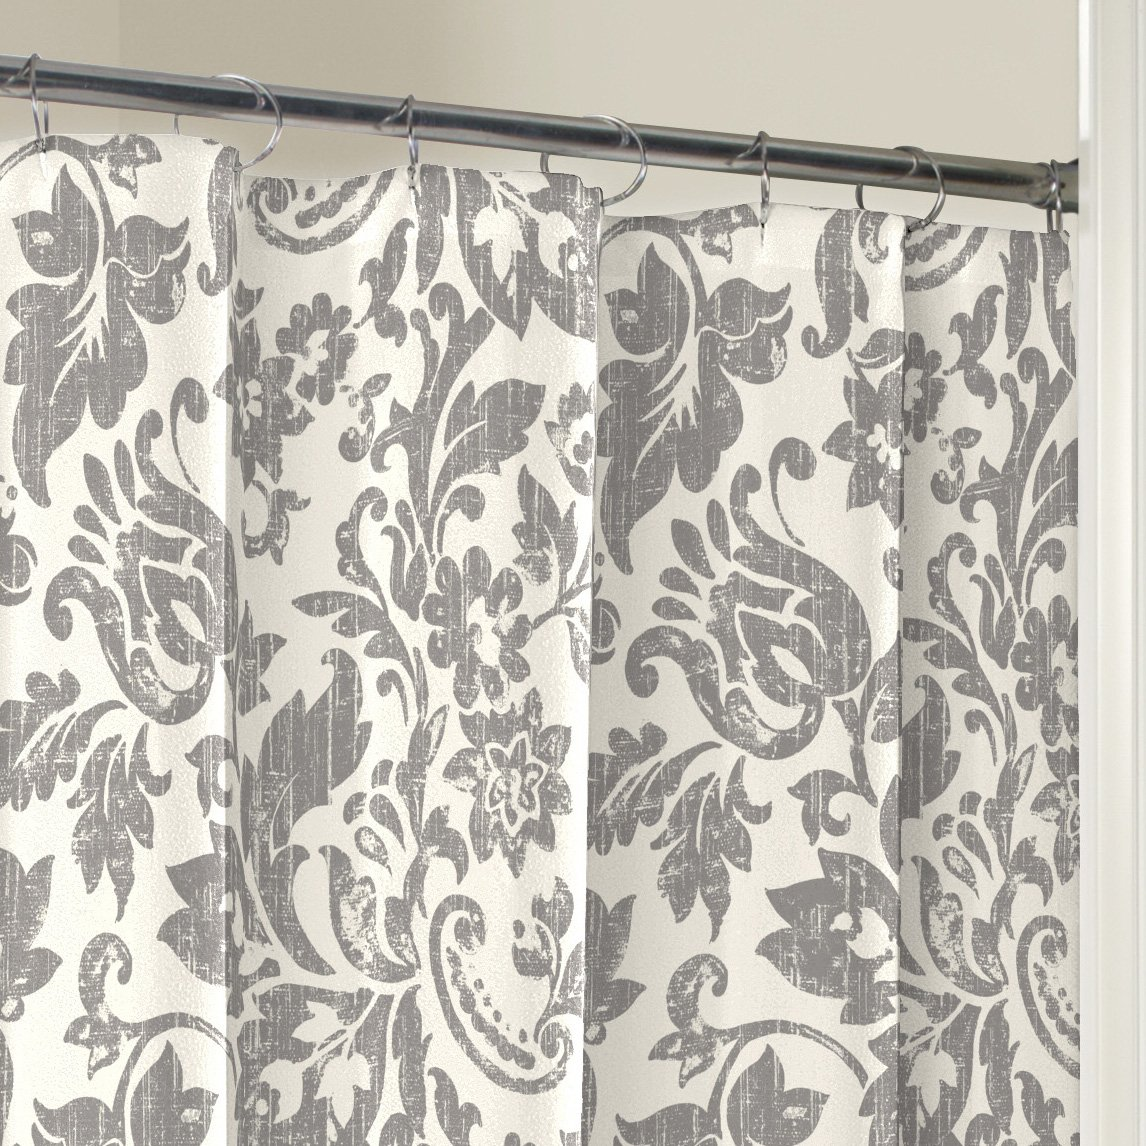 Amazon.com: Marble Hill 16753SHWR072GRY Tanner Shower Curtain, 72x72 ...